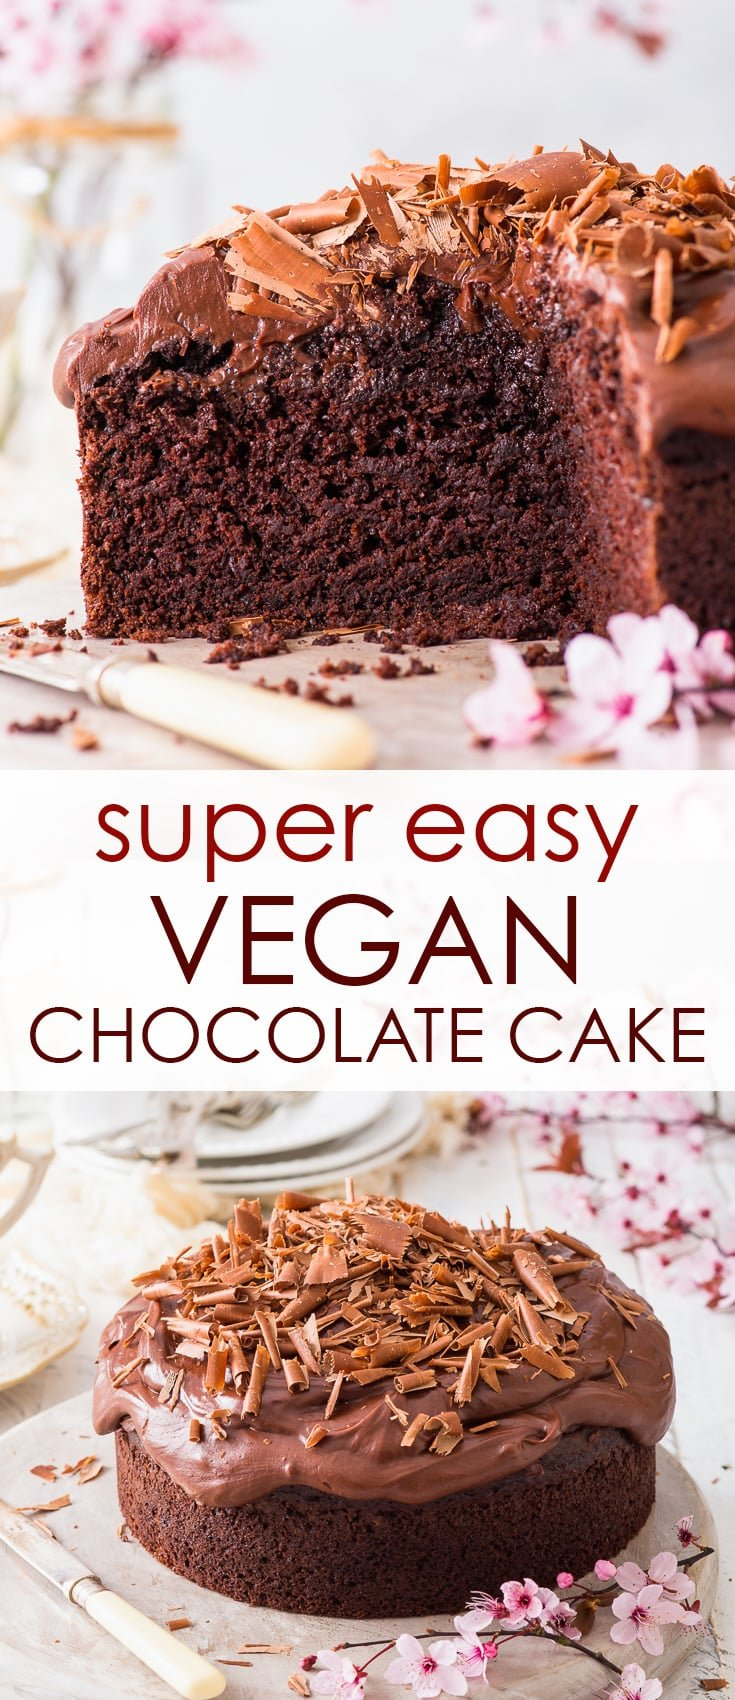 Super Easy Vegan Chocolate Cake - Intensely chocolatey, perfectly moist, super pretty and dead easy to make – this vegan chocolate cake is EVERYTHING a chocolate cake should be, and more. With no egg replacements and no fancy ingredients or equipment needed – this is the vegan dessert recipe you need to make. Chocolate cake recipe. Dairy free cake. Vegan cake. Vegan recipes. Easy cake recipe. Vegan chocolate ganache. Vegan frosting recipe. #cake #vegan